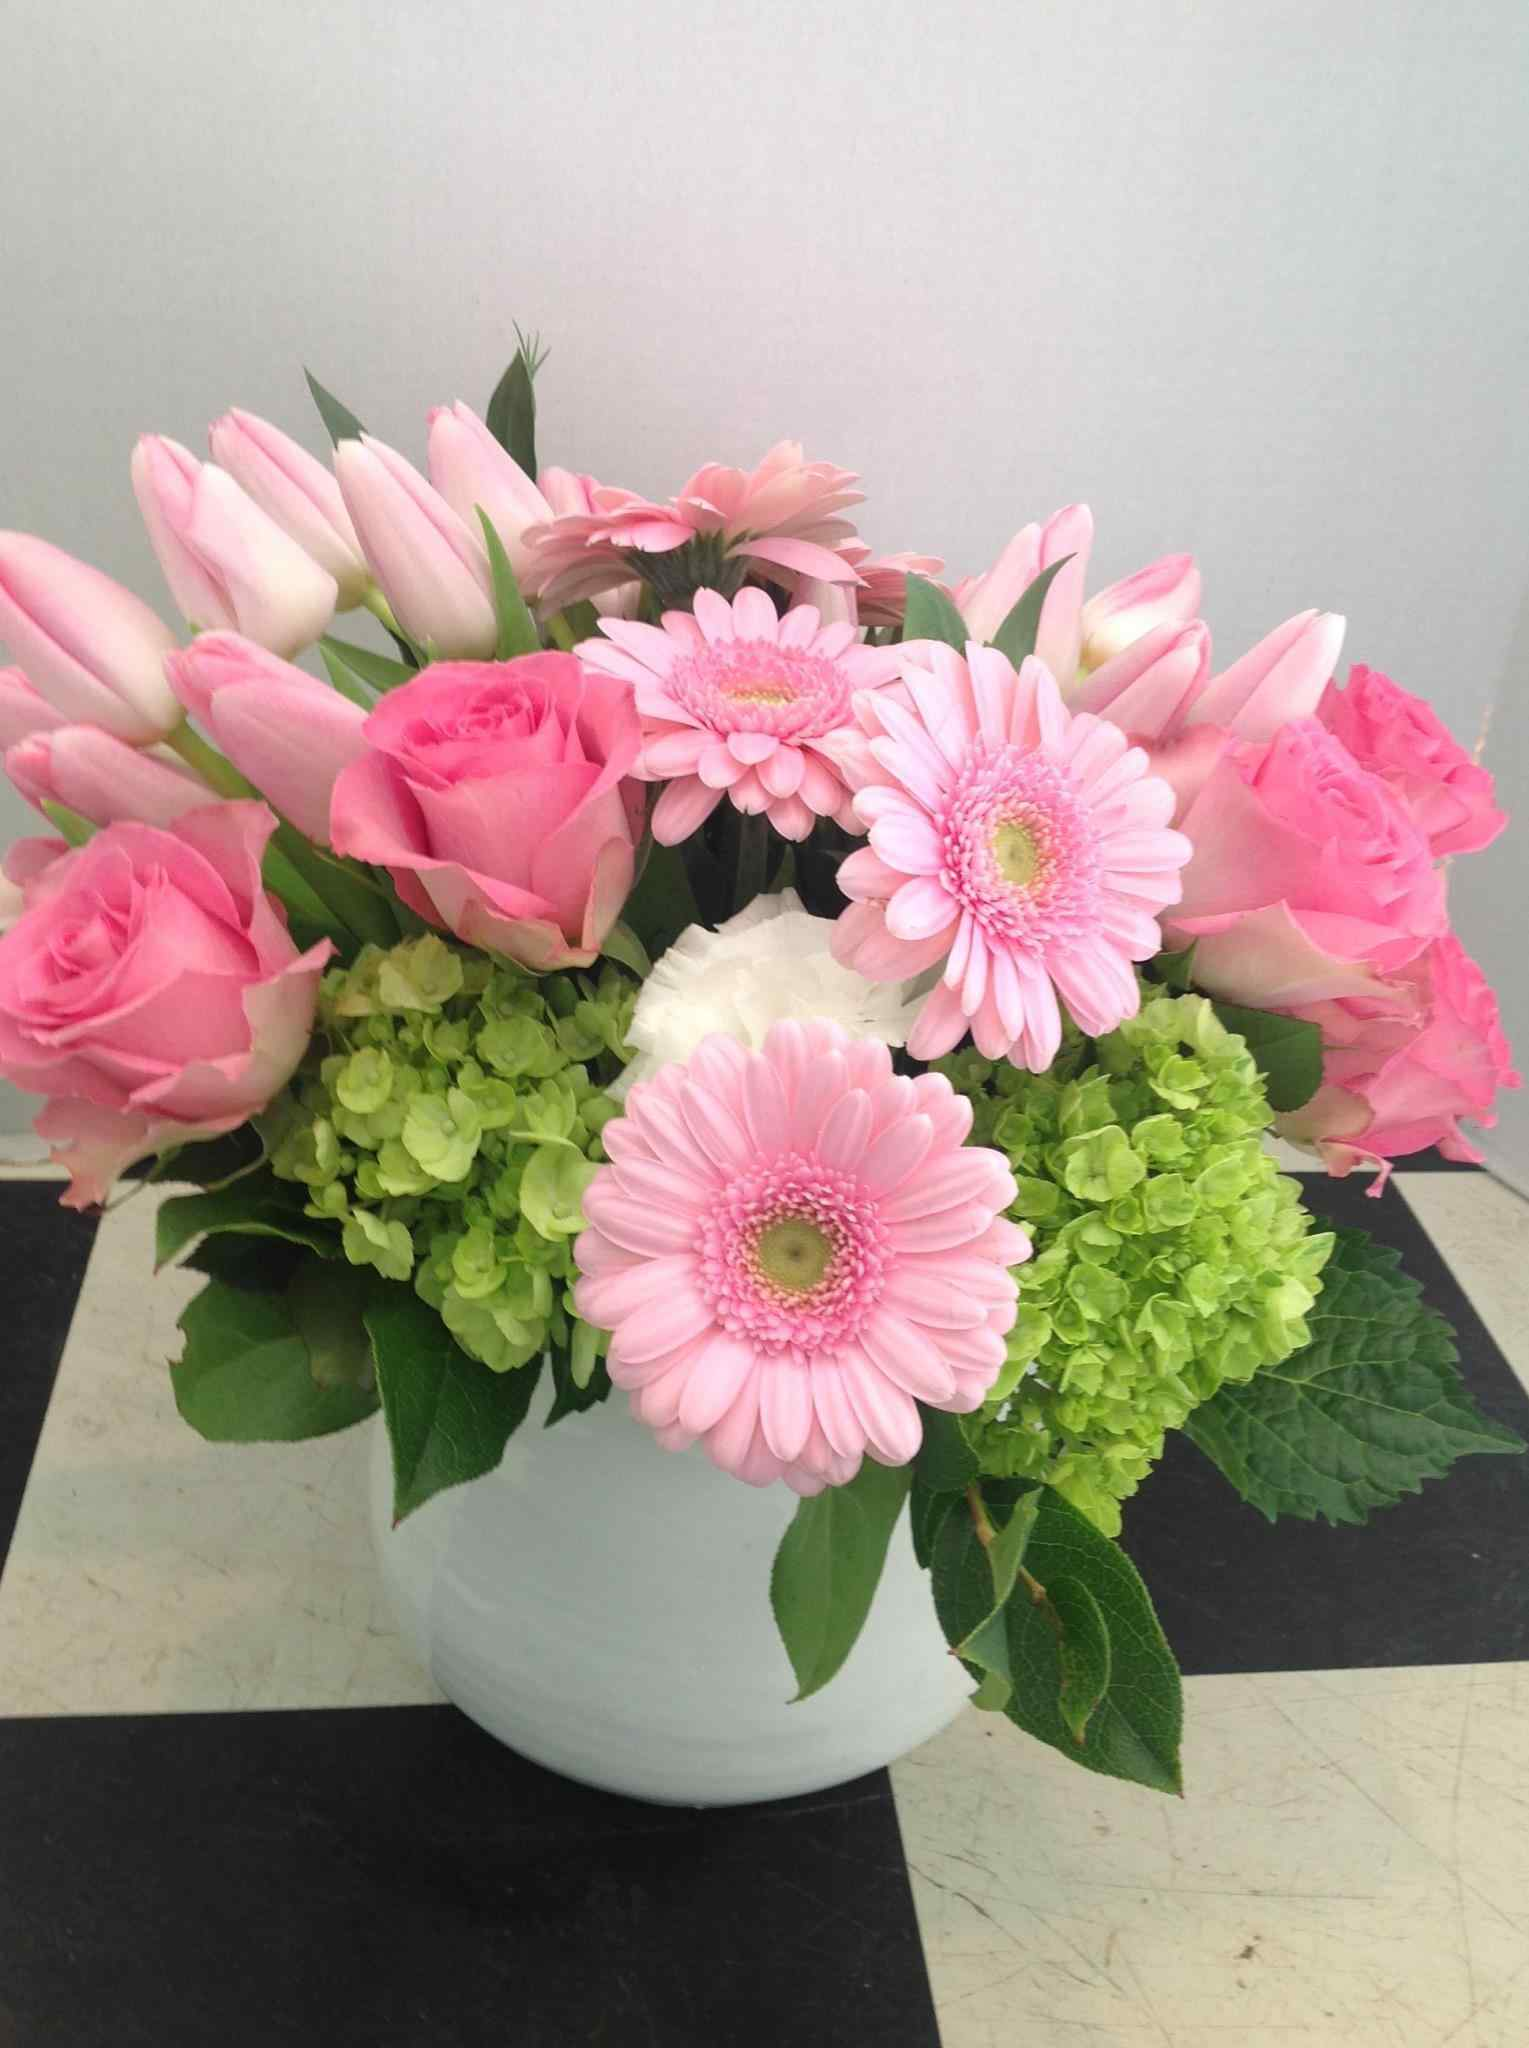 Reasonable flower delivery day order delivered for valentineus cheap back to post reasonable flower delivery izmirmasajfo